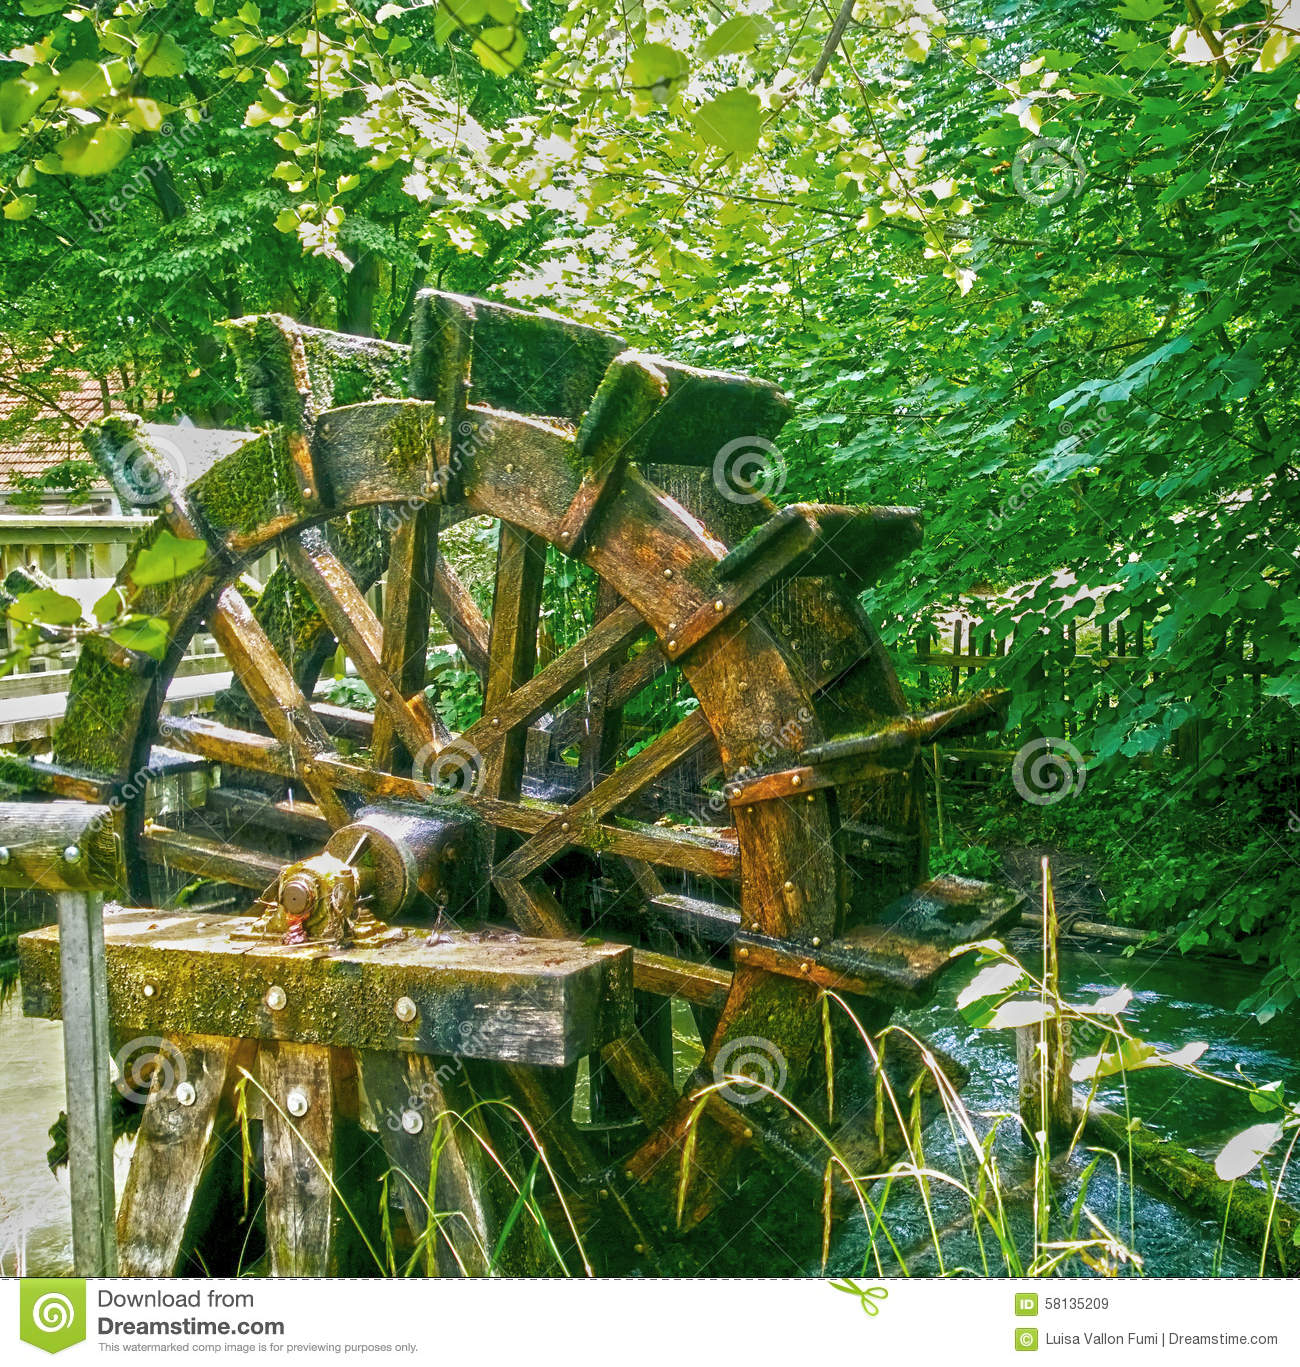 how to make a small water wheel